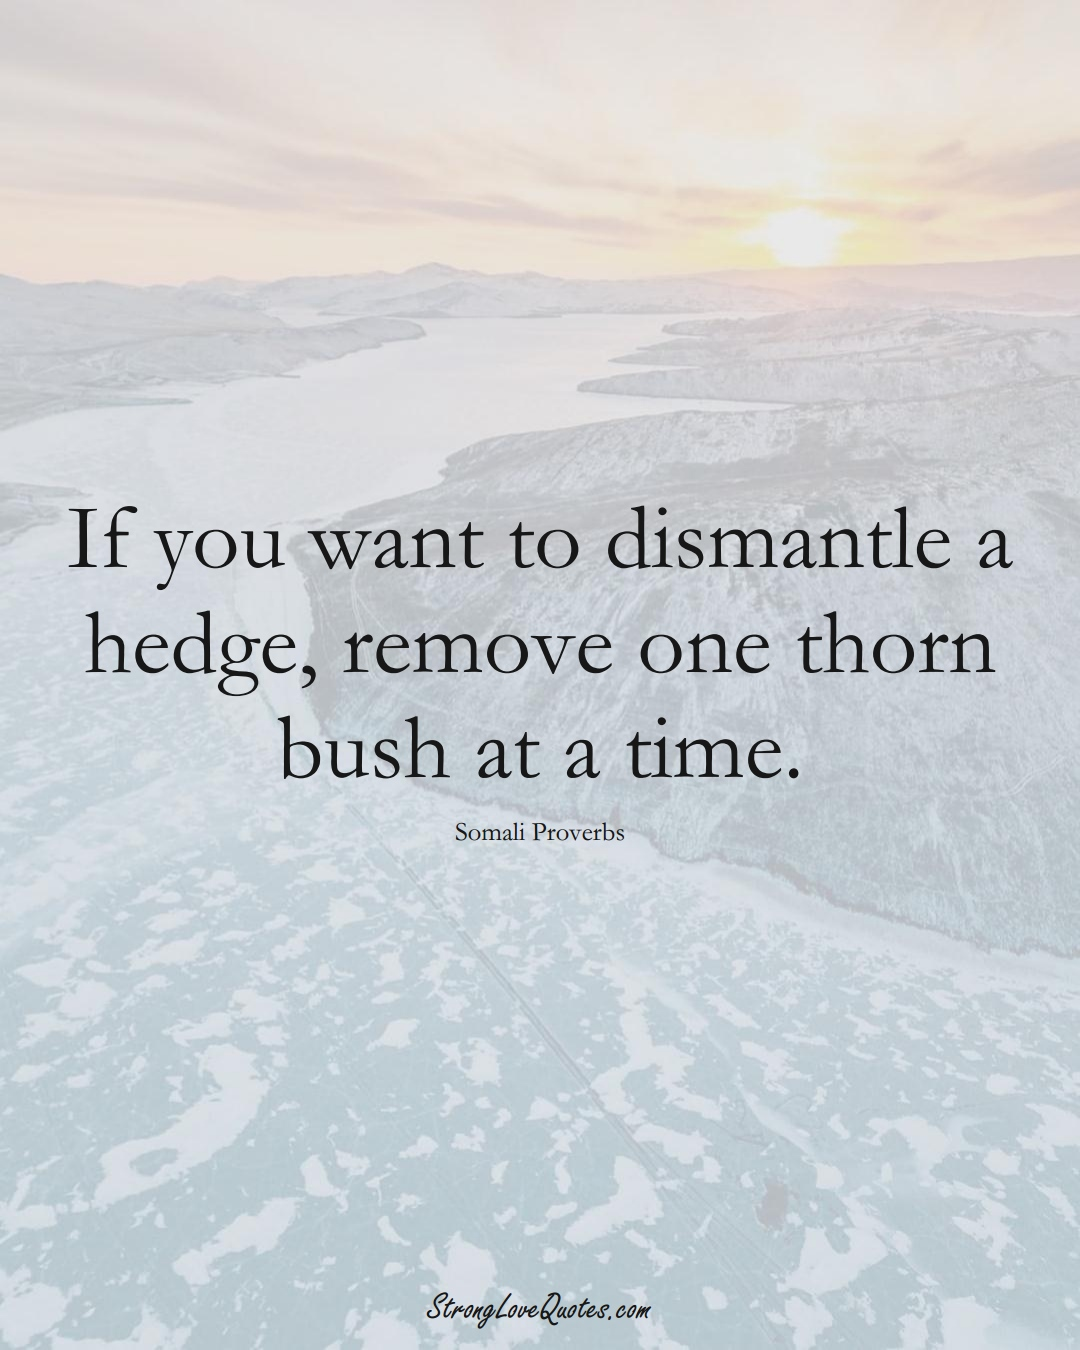 If you want to dismantle a hedge, remove one thorn bush at a time. (Somali Sayings);  #AfricanSayings